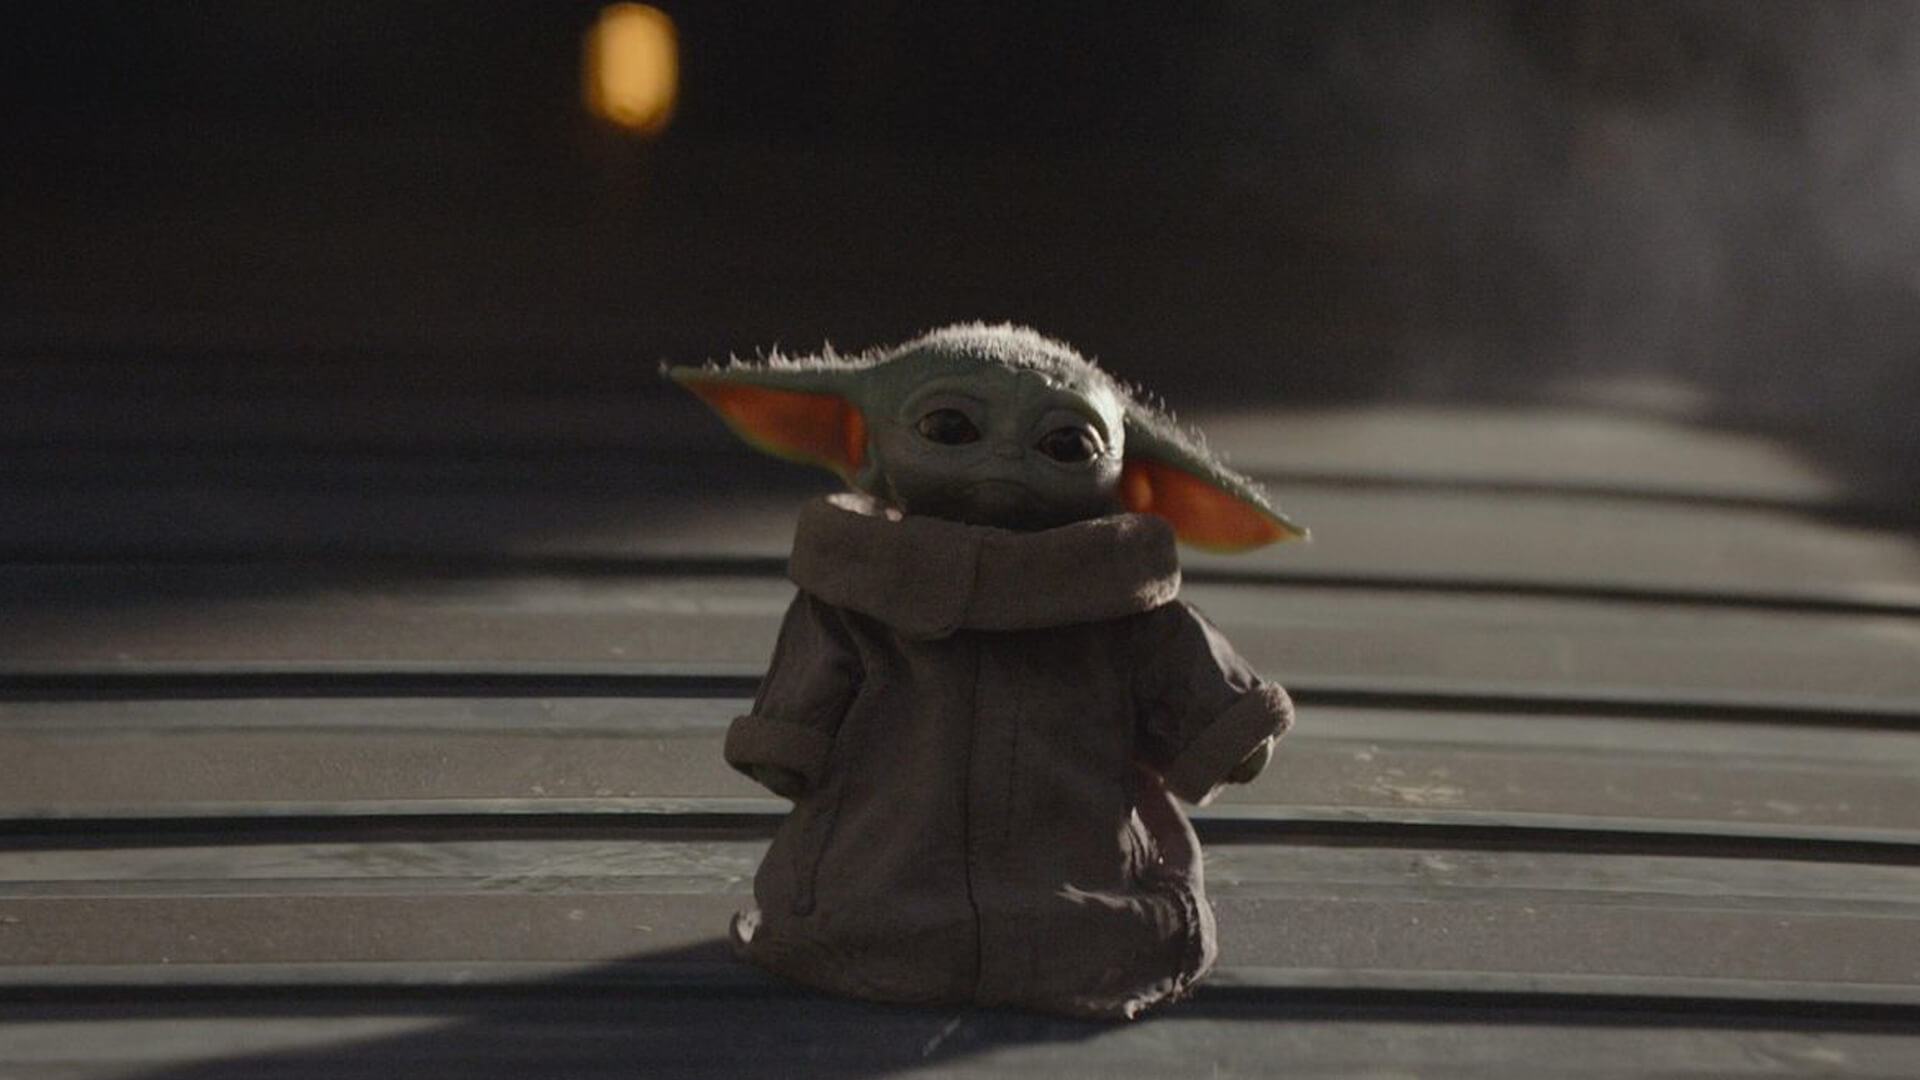 20 Innocent Baby Yoda Wallpapers